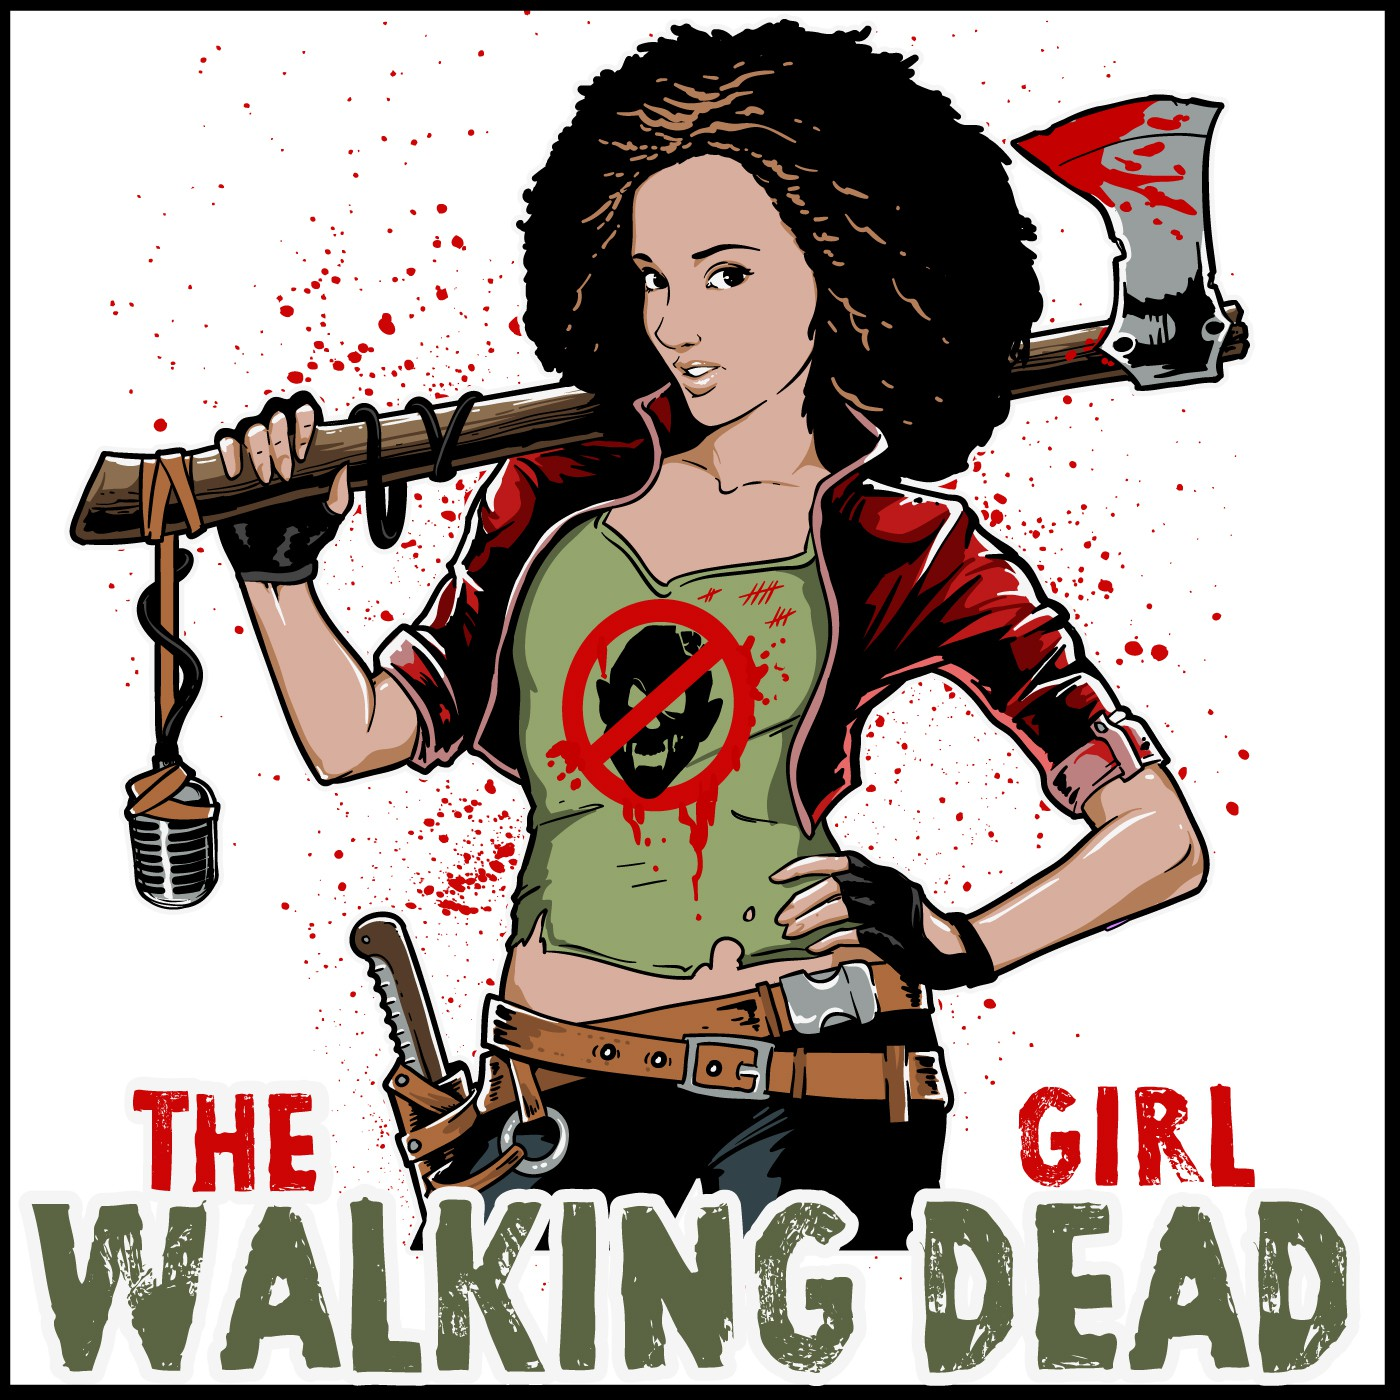 Blend the world of The Walking Dead with a strong female character in a logo for podcast artwork.